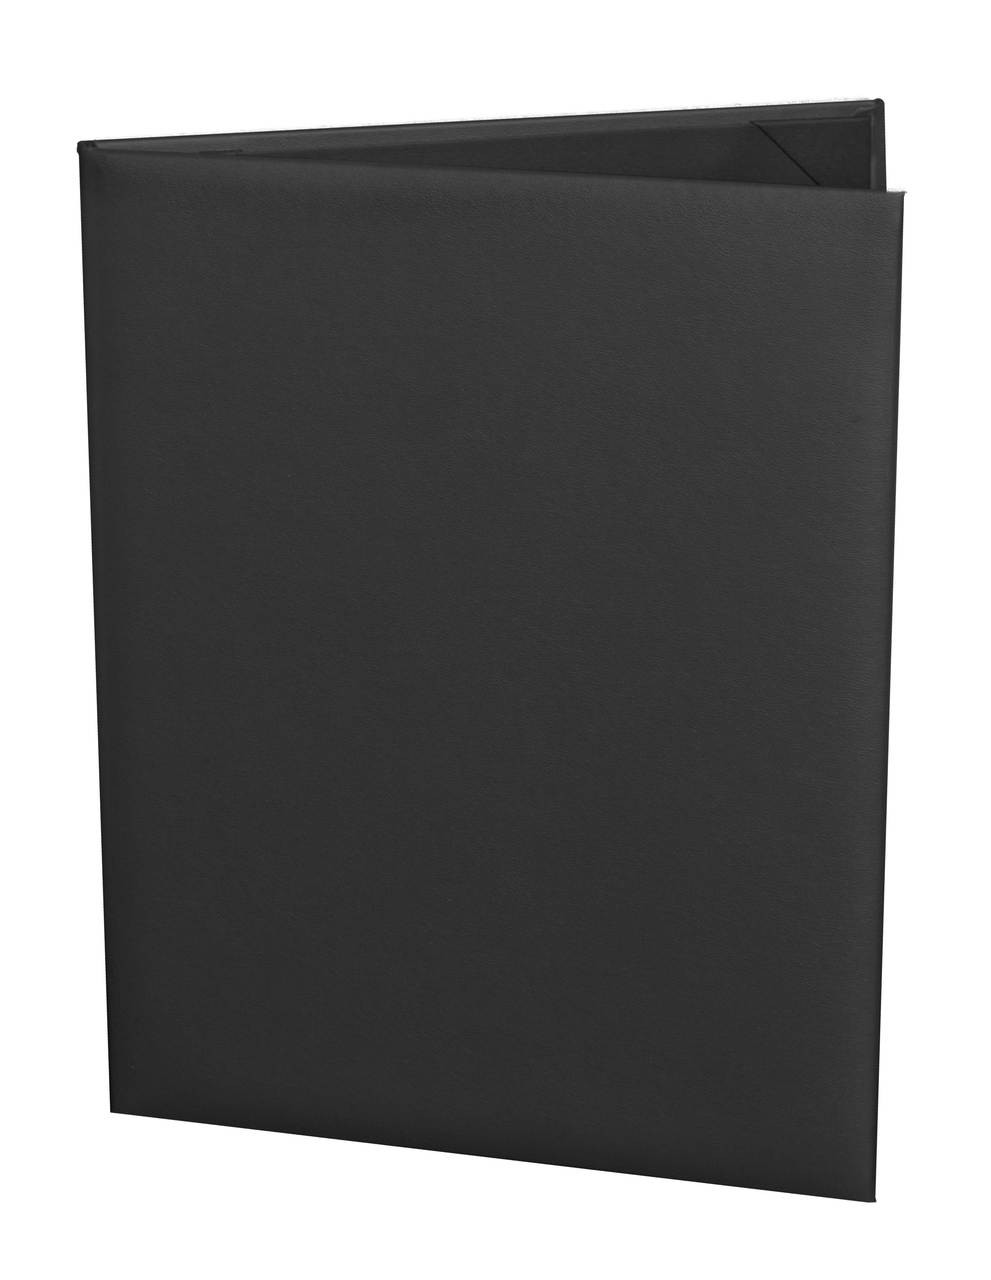 """Menu Cover in Black Faux Leather 2-Panels for 5.5"""" x 8.5"""" Menu Sheets"""